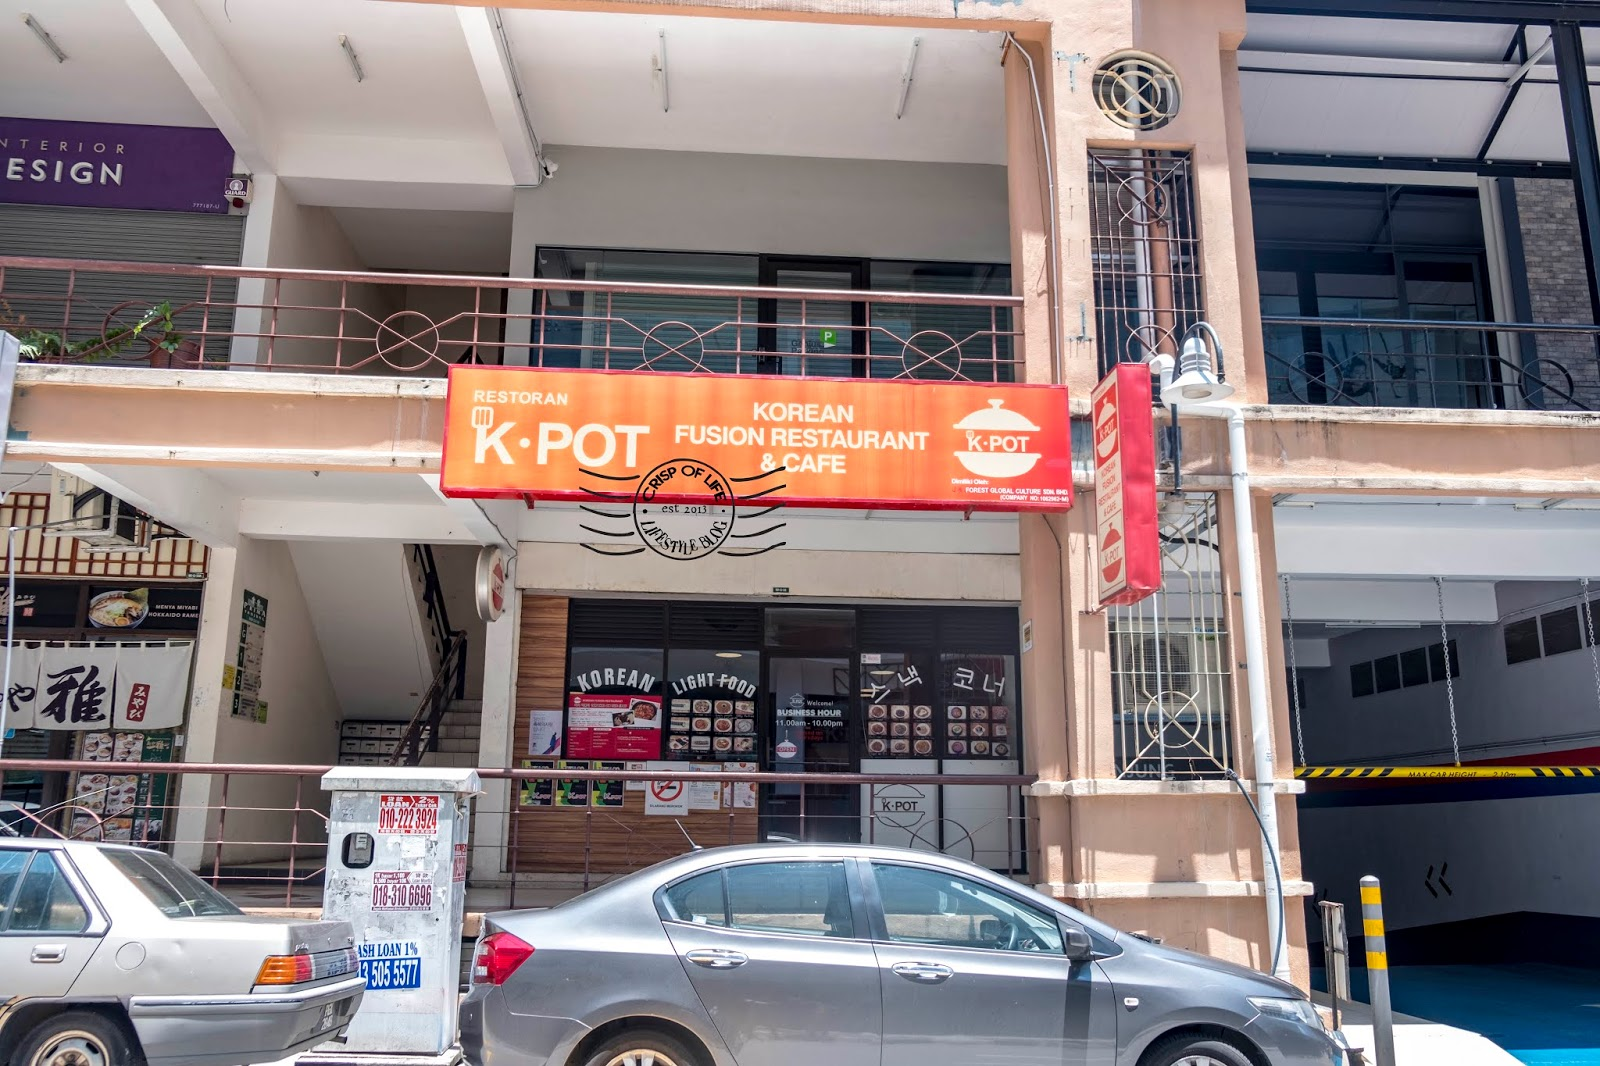 K-Pot Korean Fusion Restaurant & Cafe @ Prima Tanjung, Penang